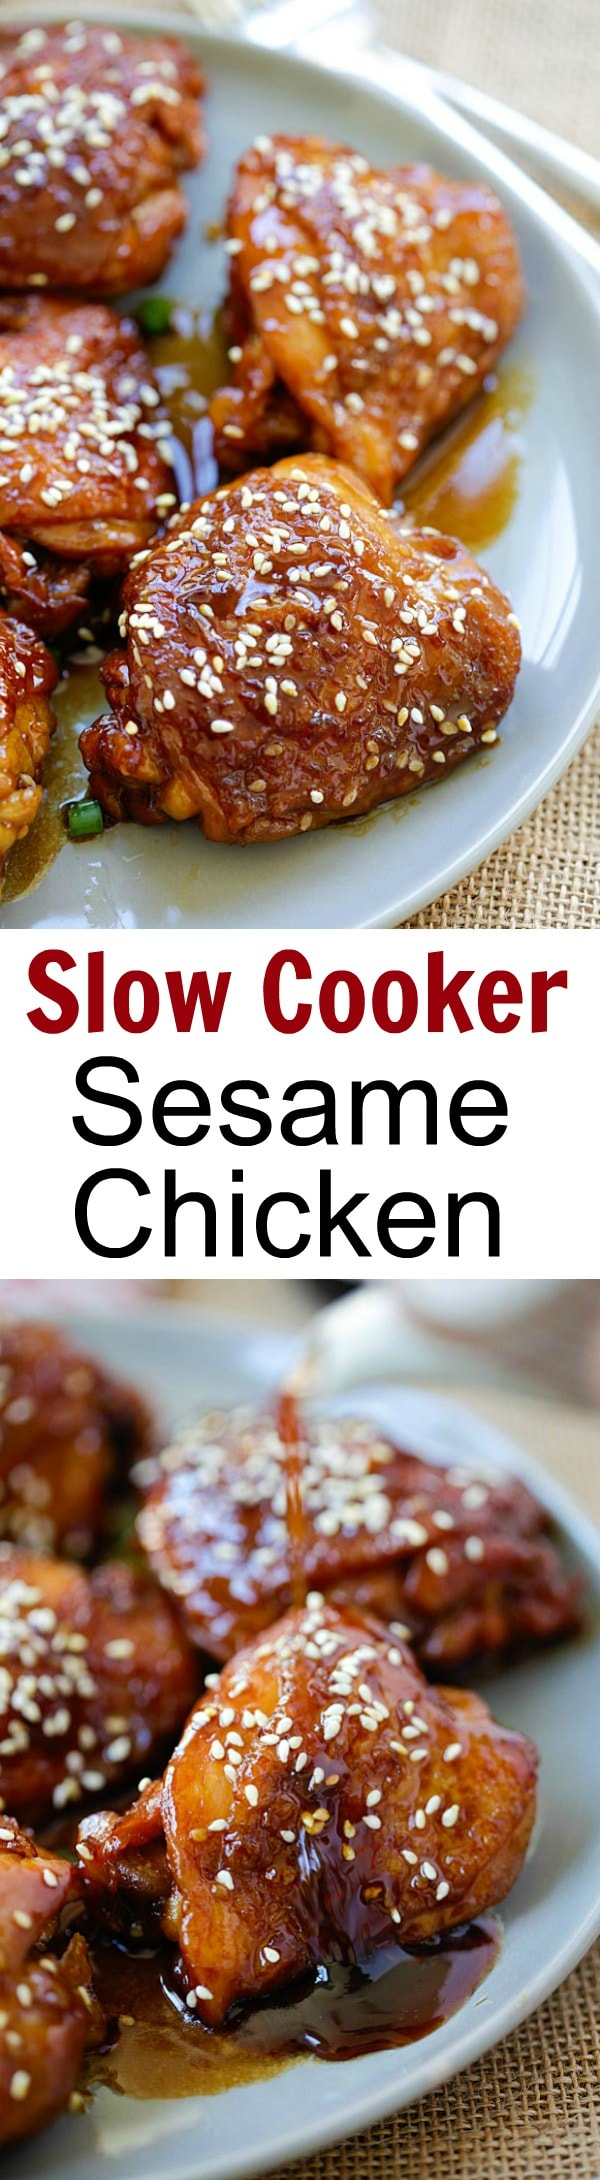 Slow Cooker Sesame Chicken – amazing chicken made with San-J Tamari and sesame sauce. Gluten-free and hearty meal for the family   rasamalaysia.com